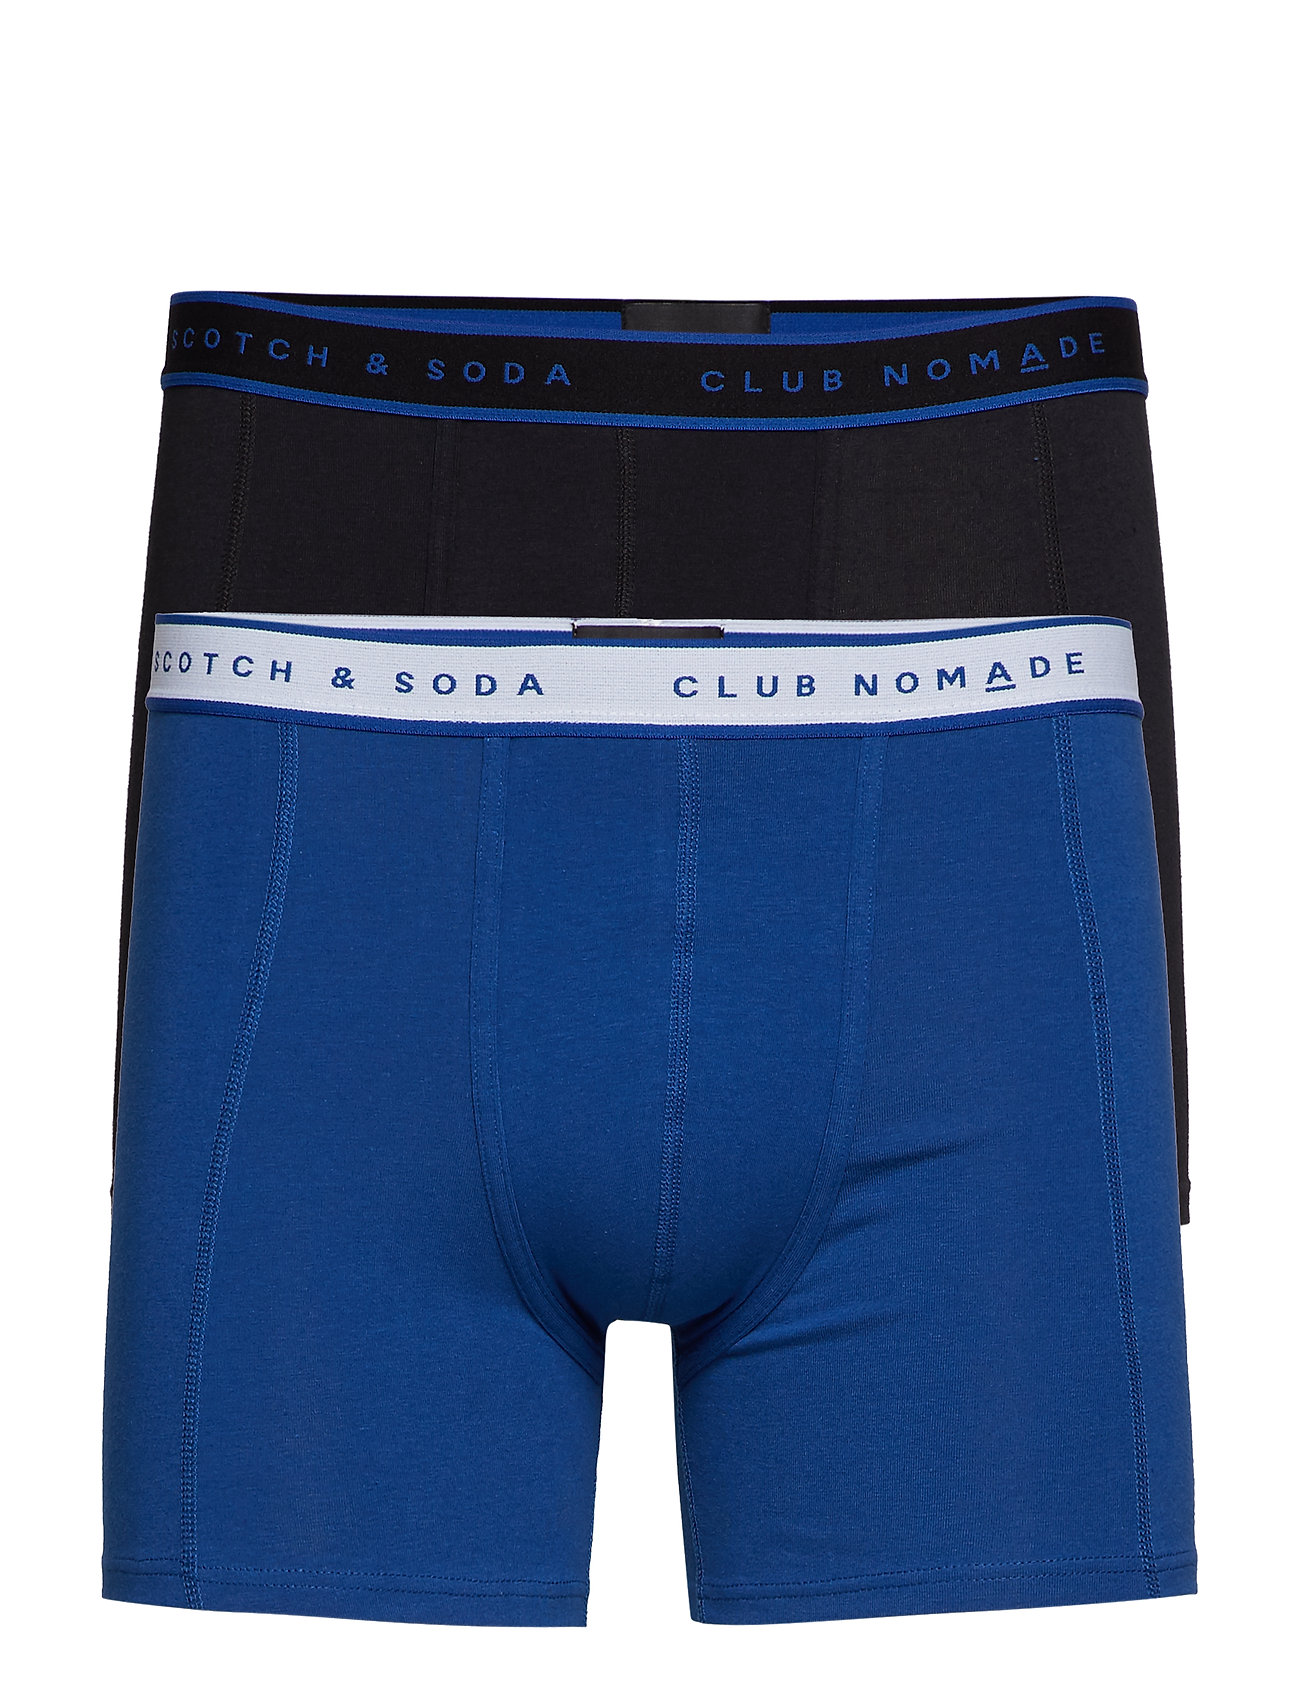 Scotch & Soda Club Nomade 2 pack boxer short - COMBO A